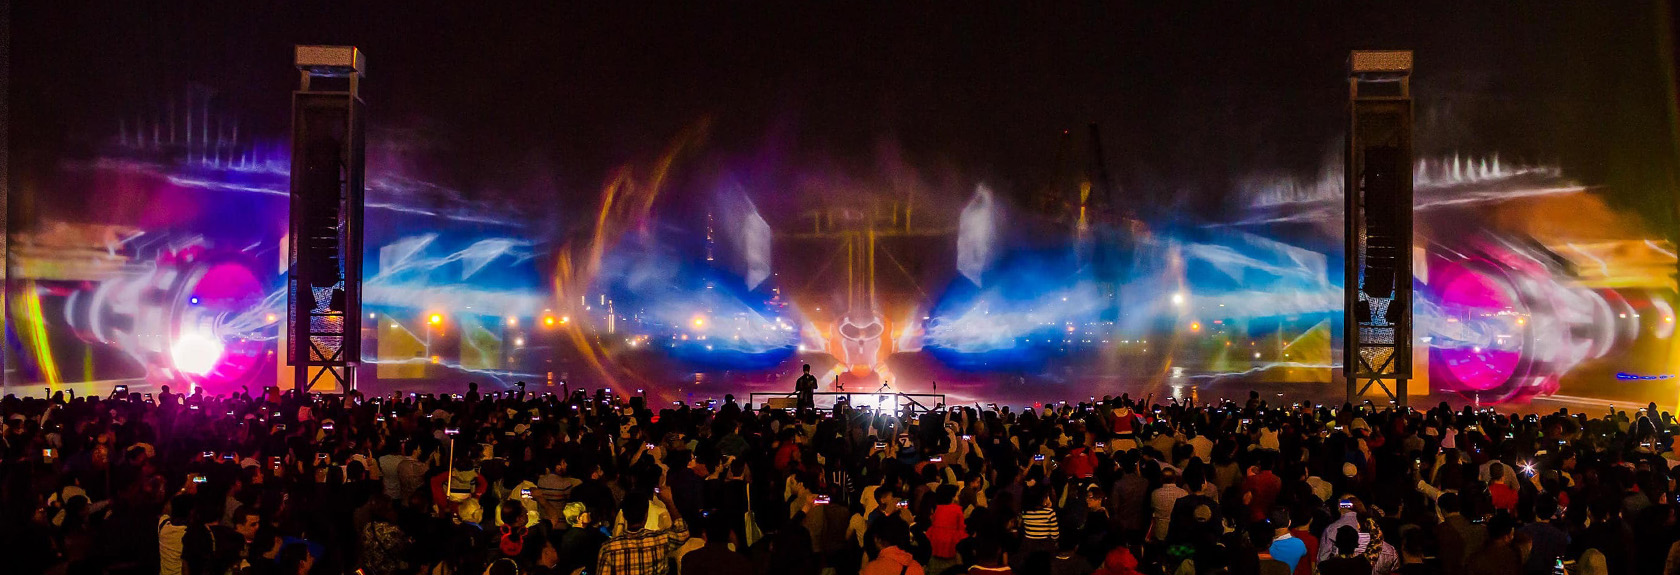 IMAGINE Laser & Light Show at Dubai Festival City